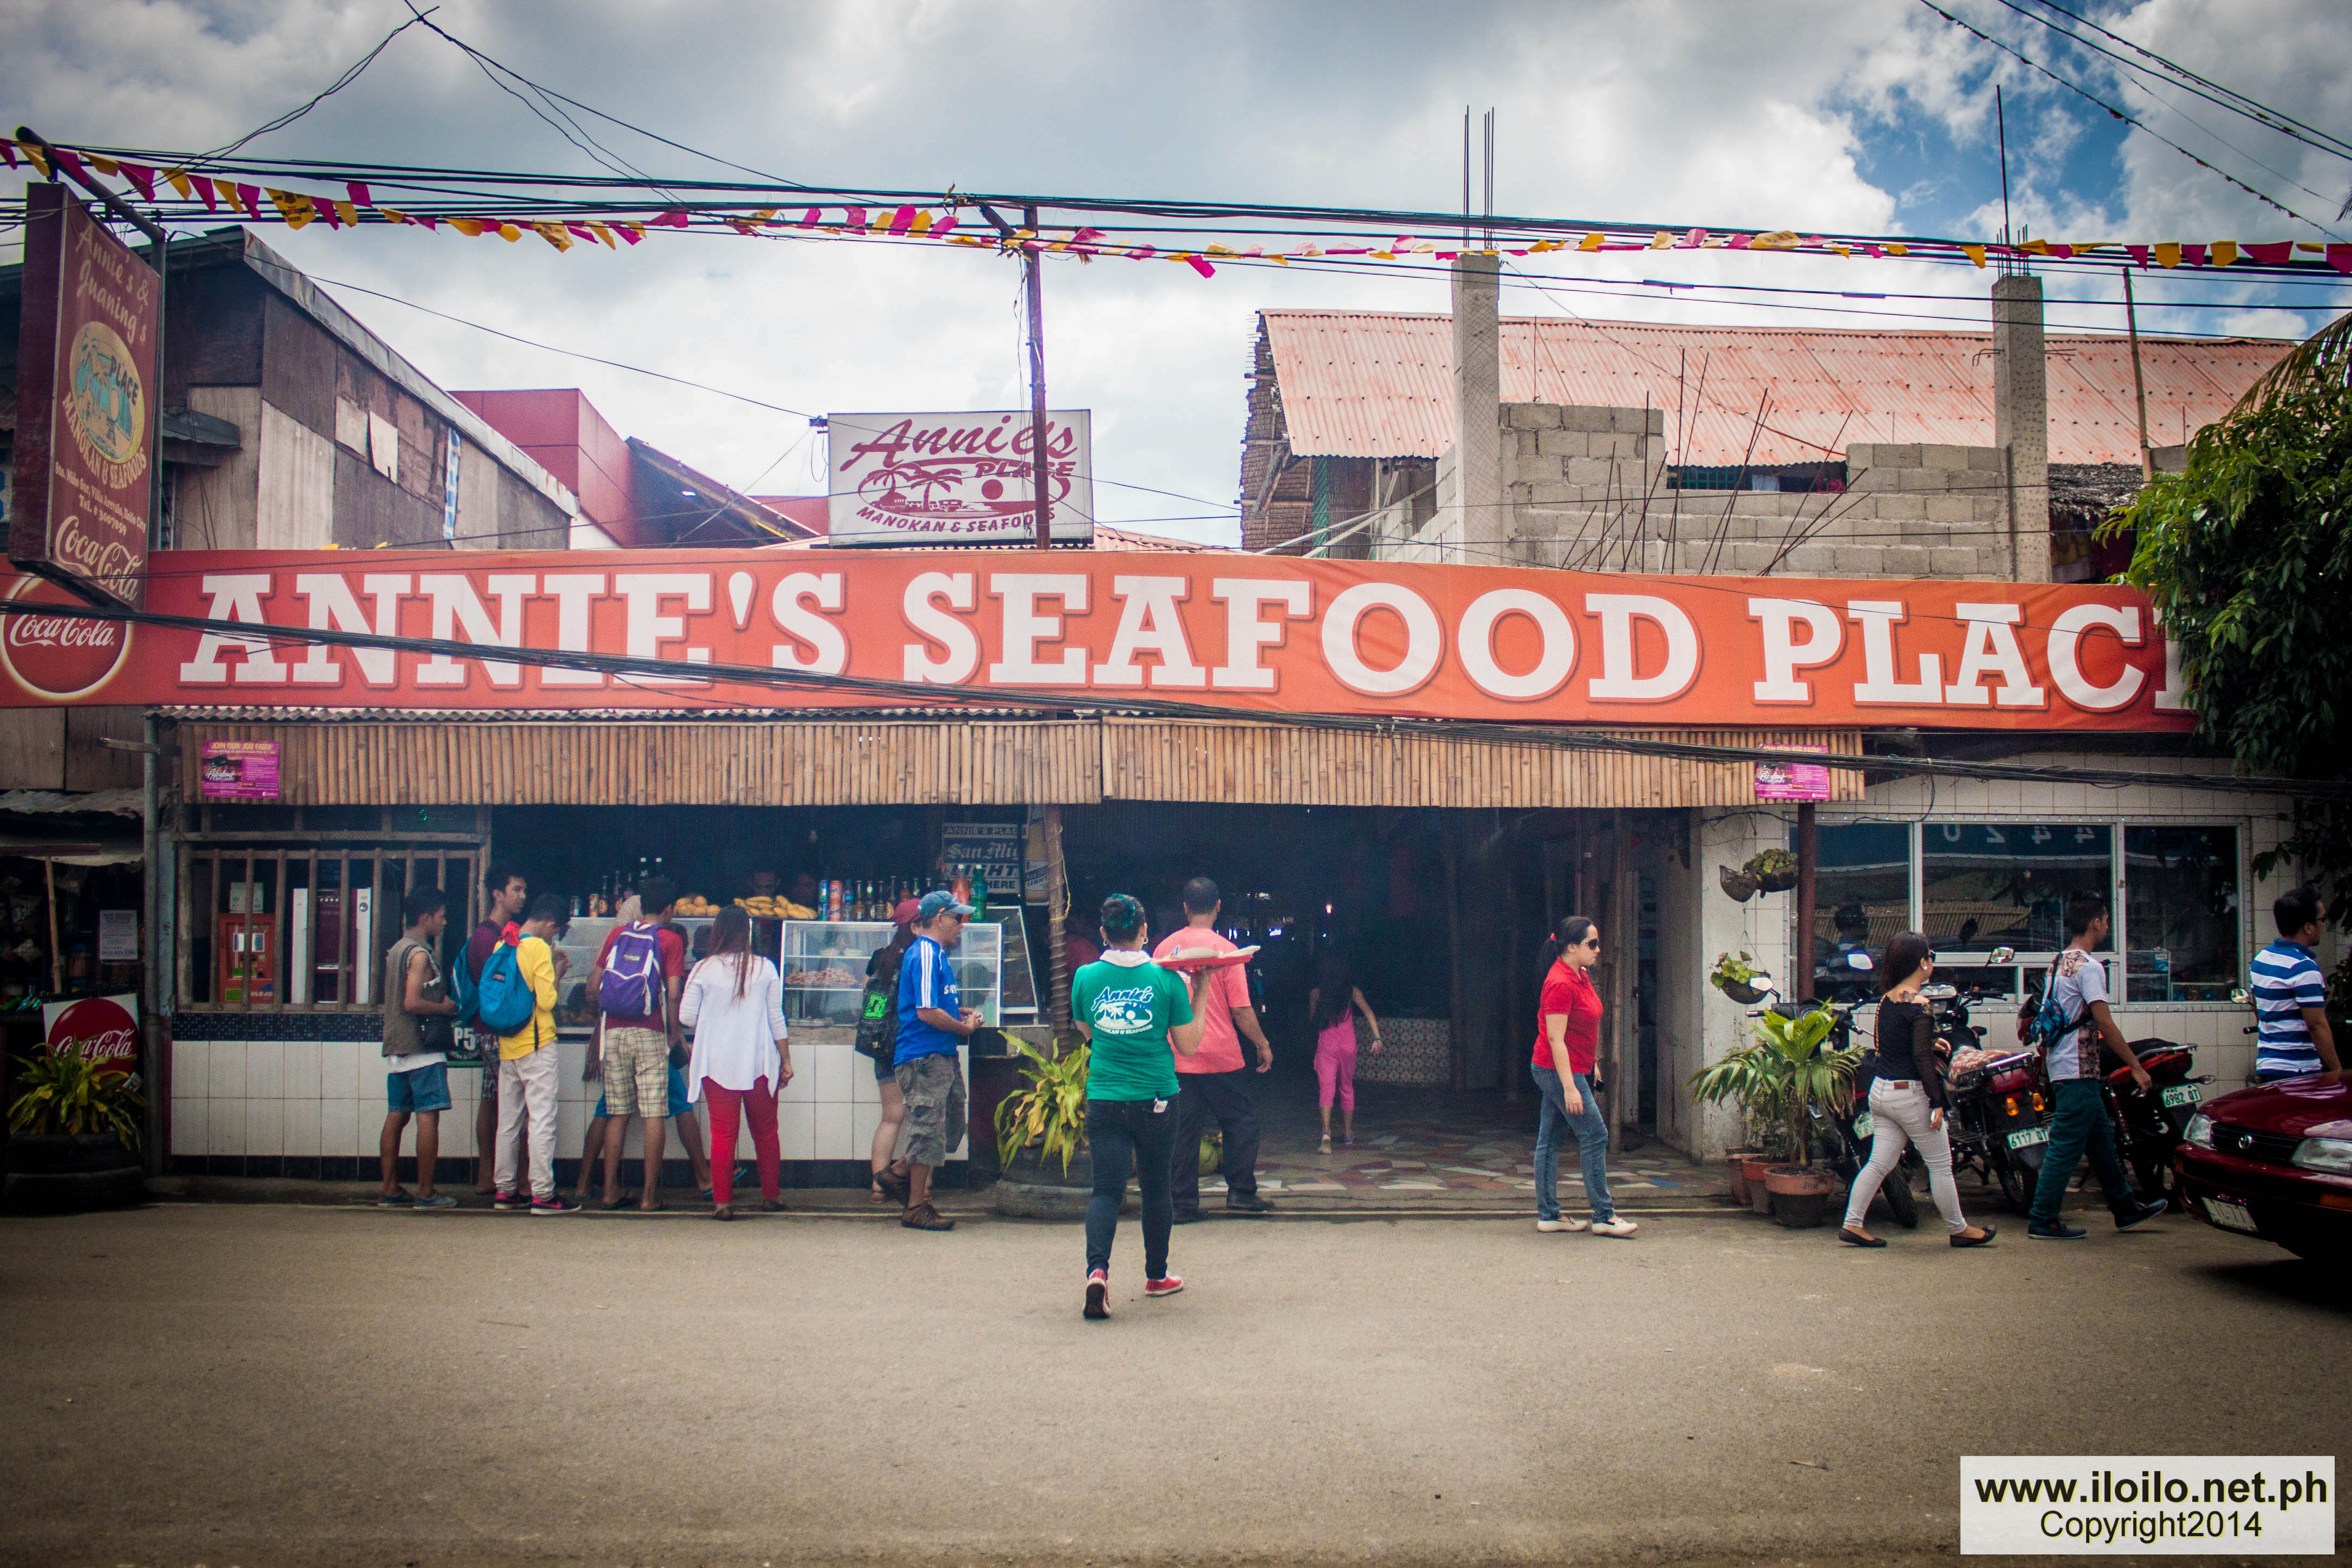 Annies Seafood Place